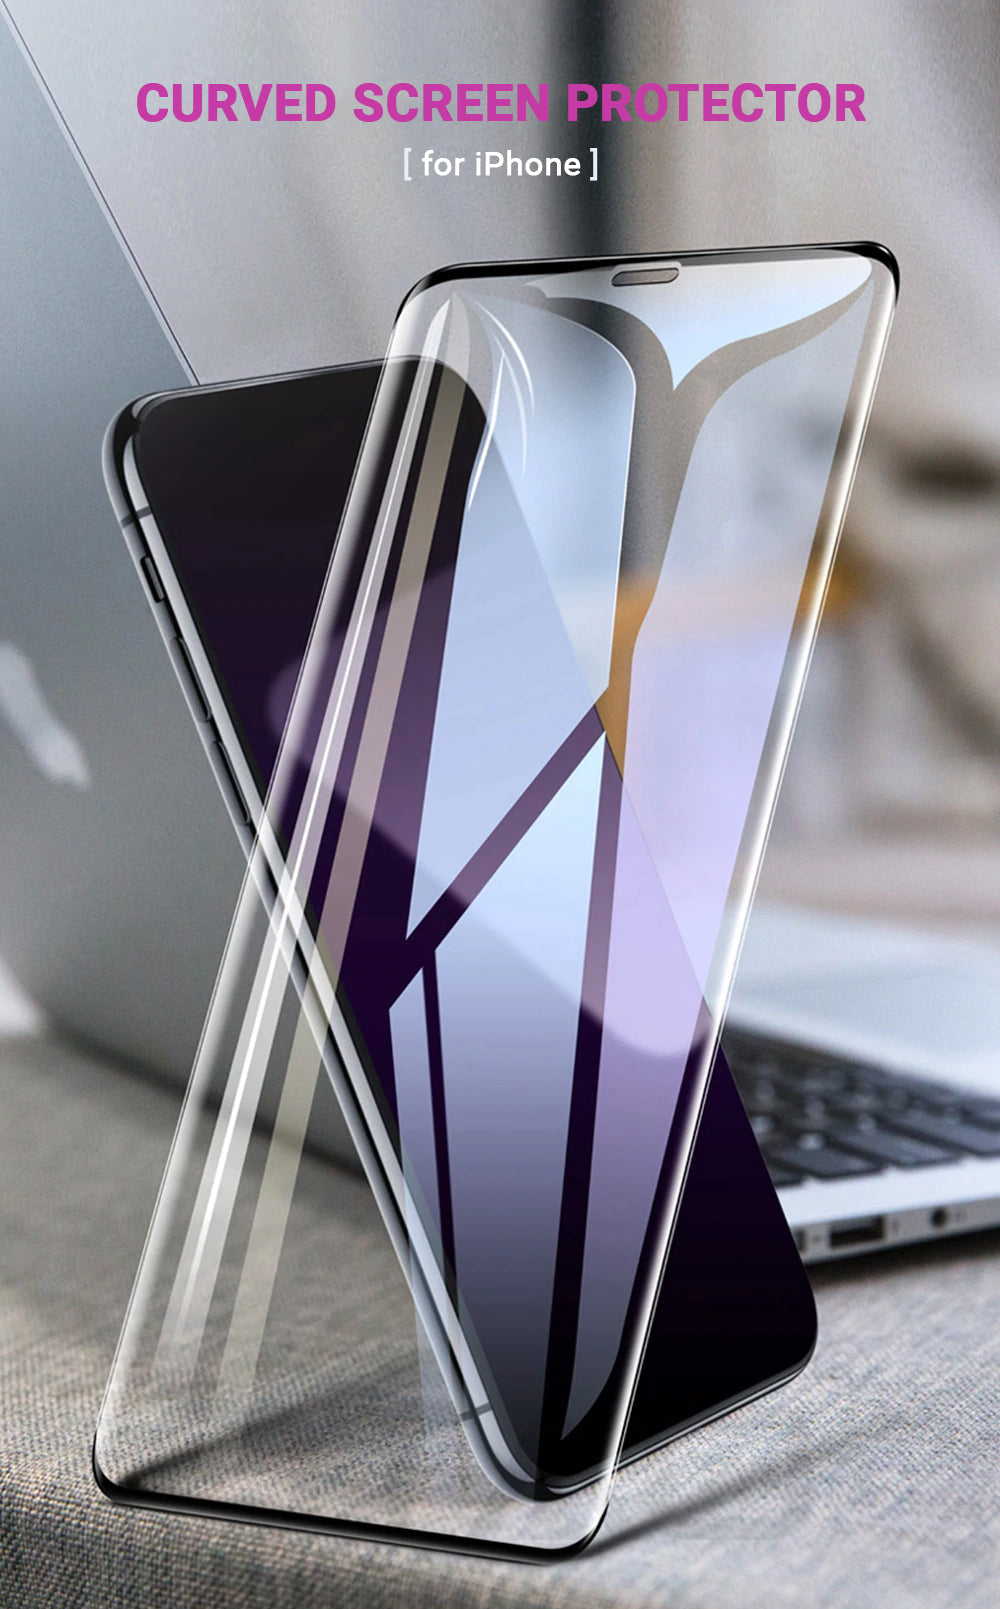 Curved Glass Screen Protector For iPhone X XS XS MAX XR 9 8 7 6 6S Plus Full Screen Coverage Protection Curved Tempered Glass Without Borders